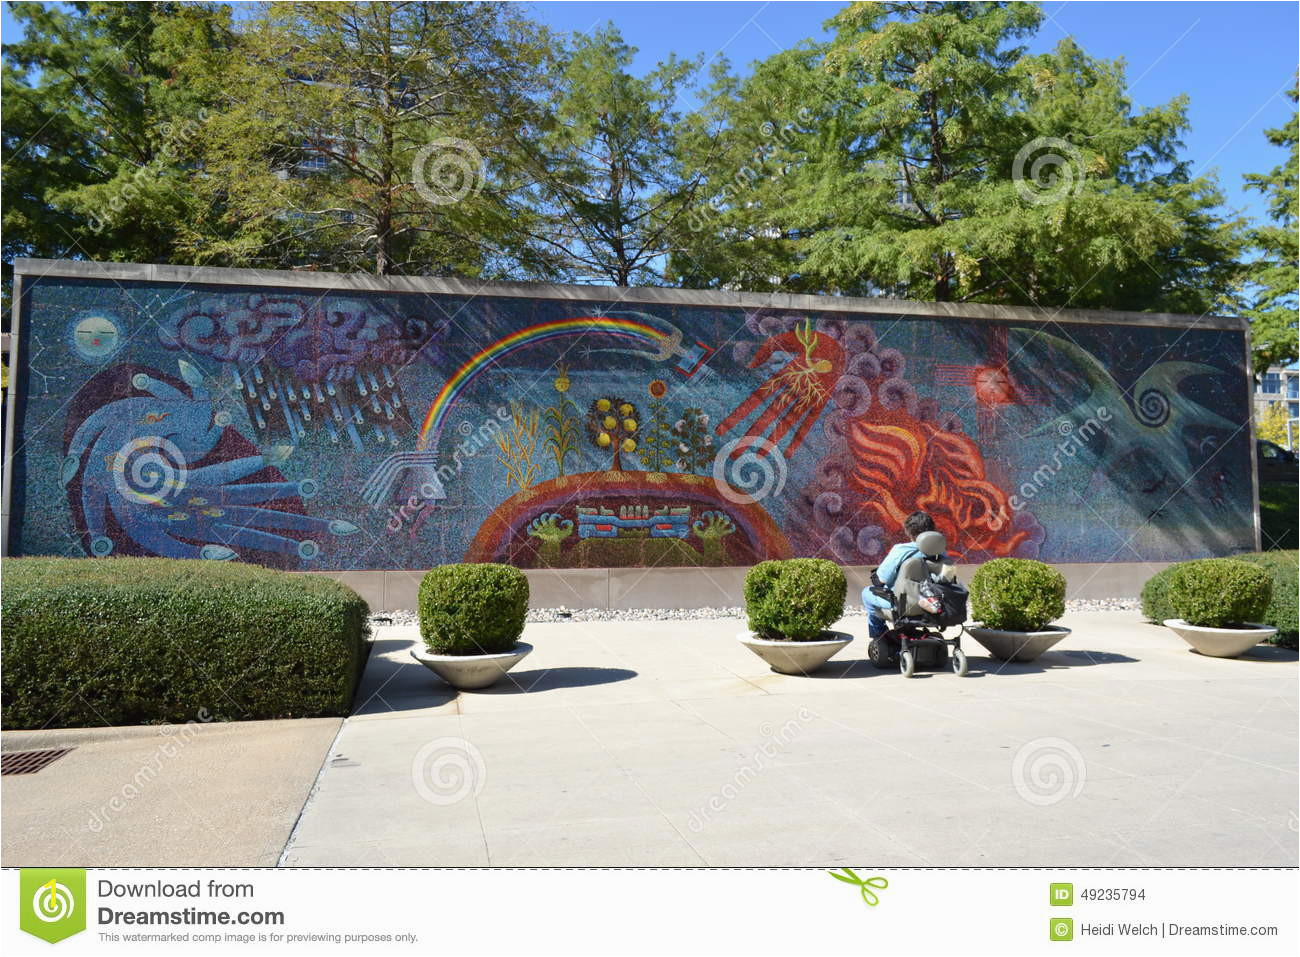 full wall mural looking painted outside dallas museum art one person wheelchair can be seen studying